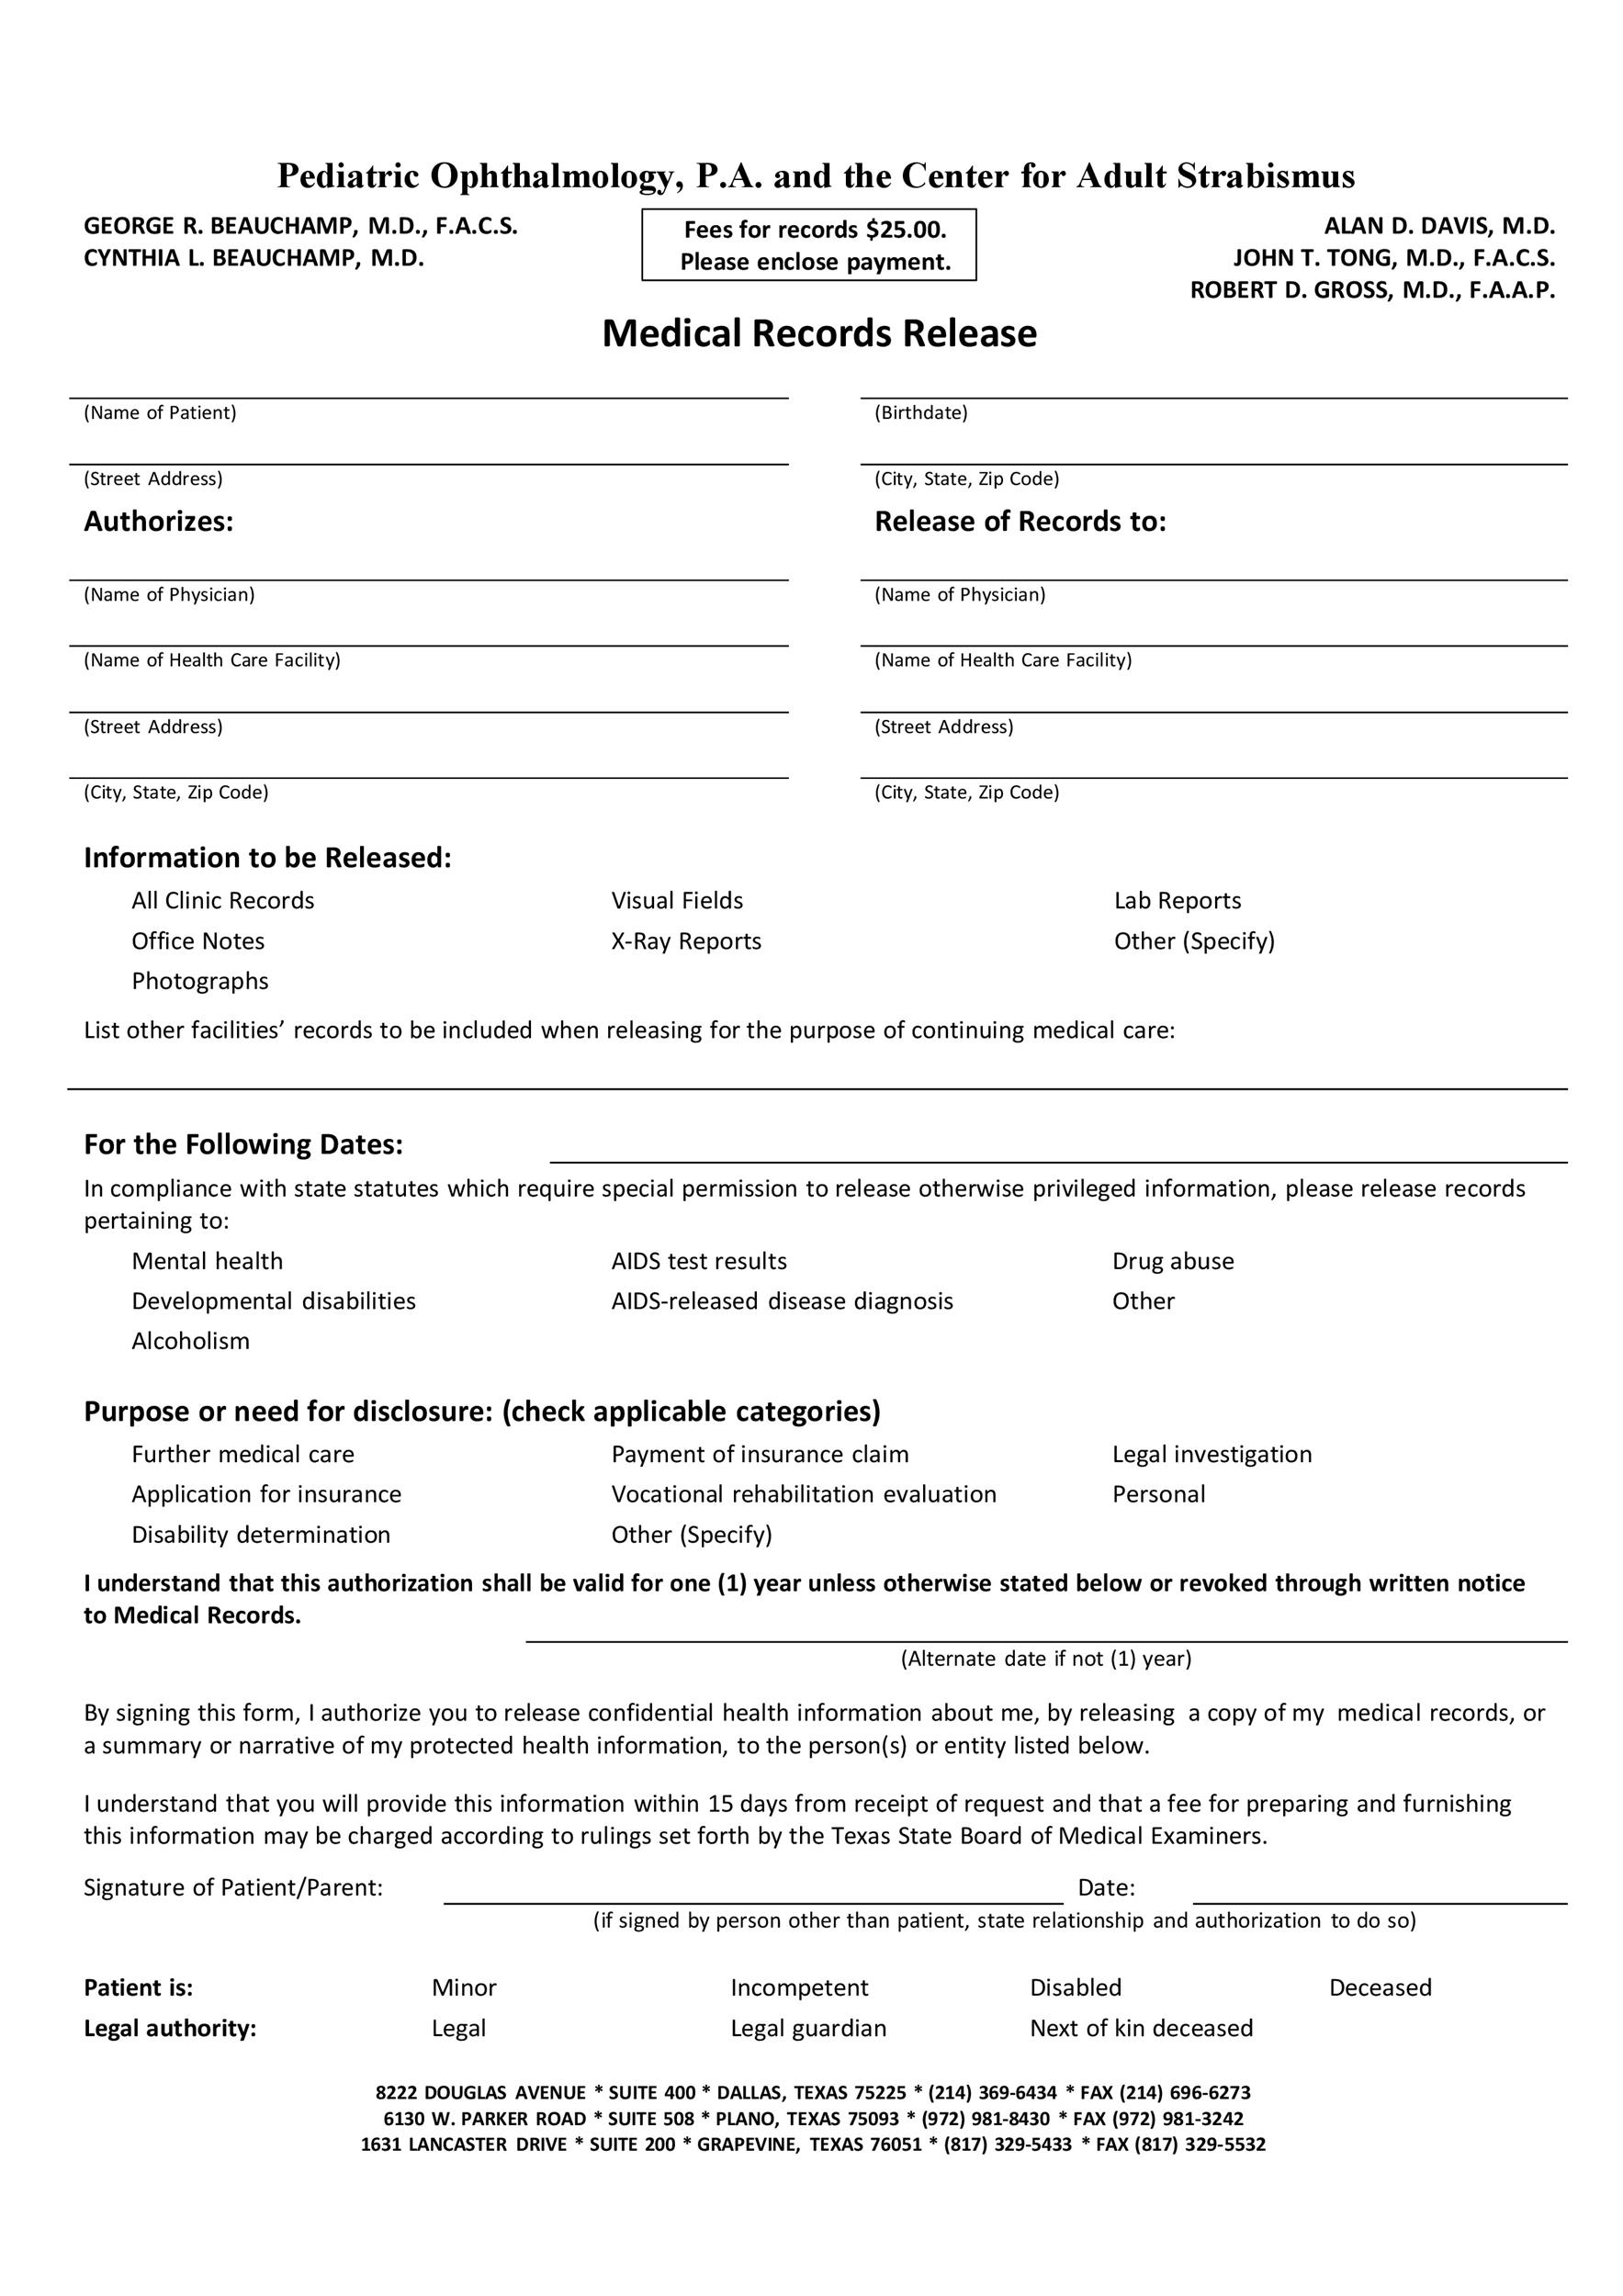 Printable Medical Release Form 11  Medical Record Release Form Template